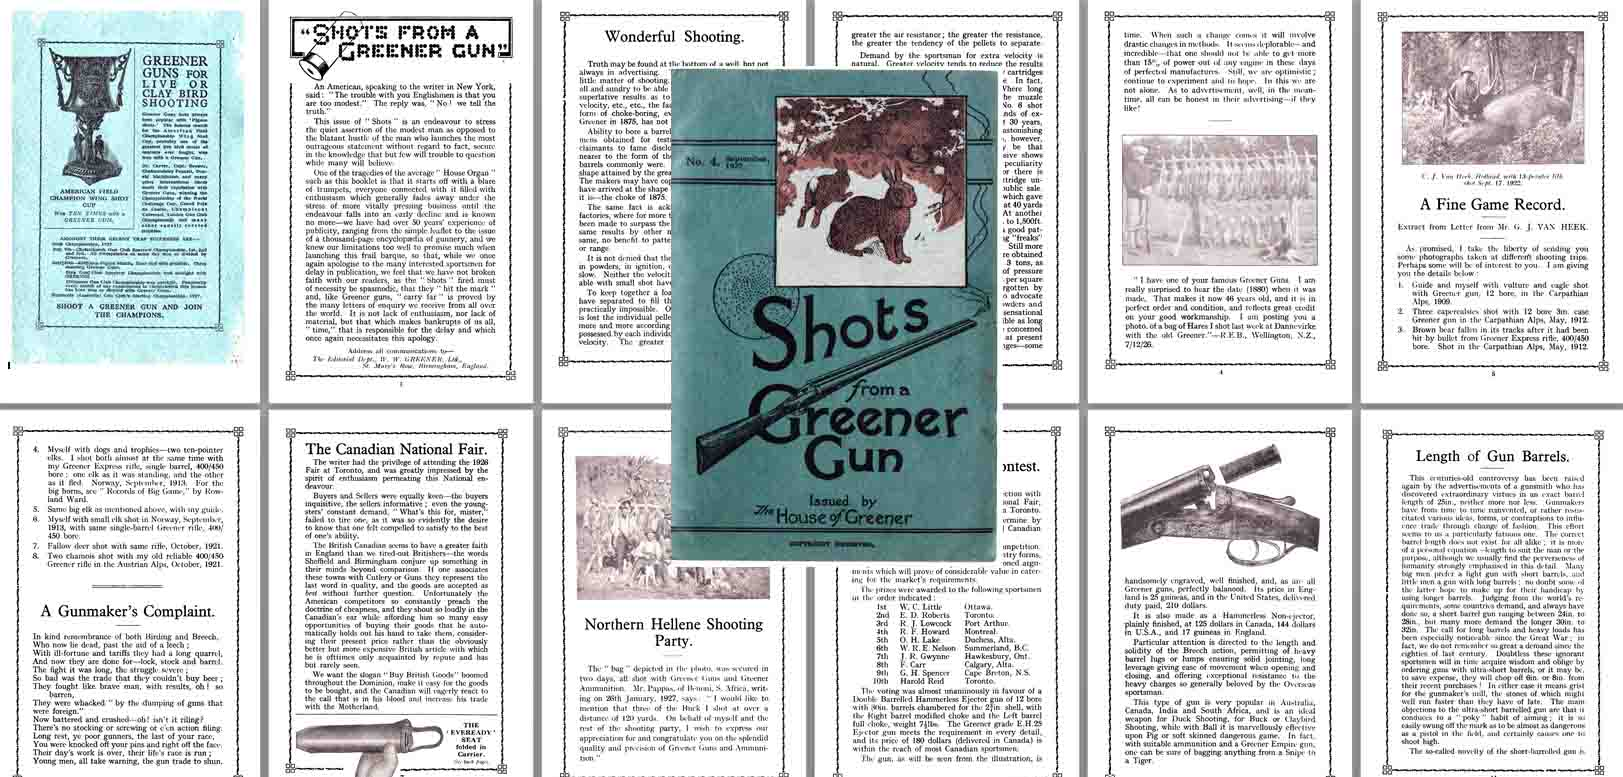 WW Greener 1927 Shots from a Greener Gun No. 2